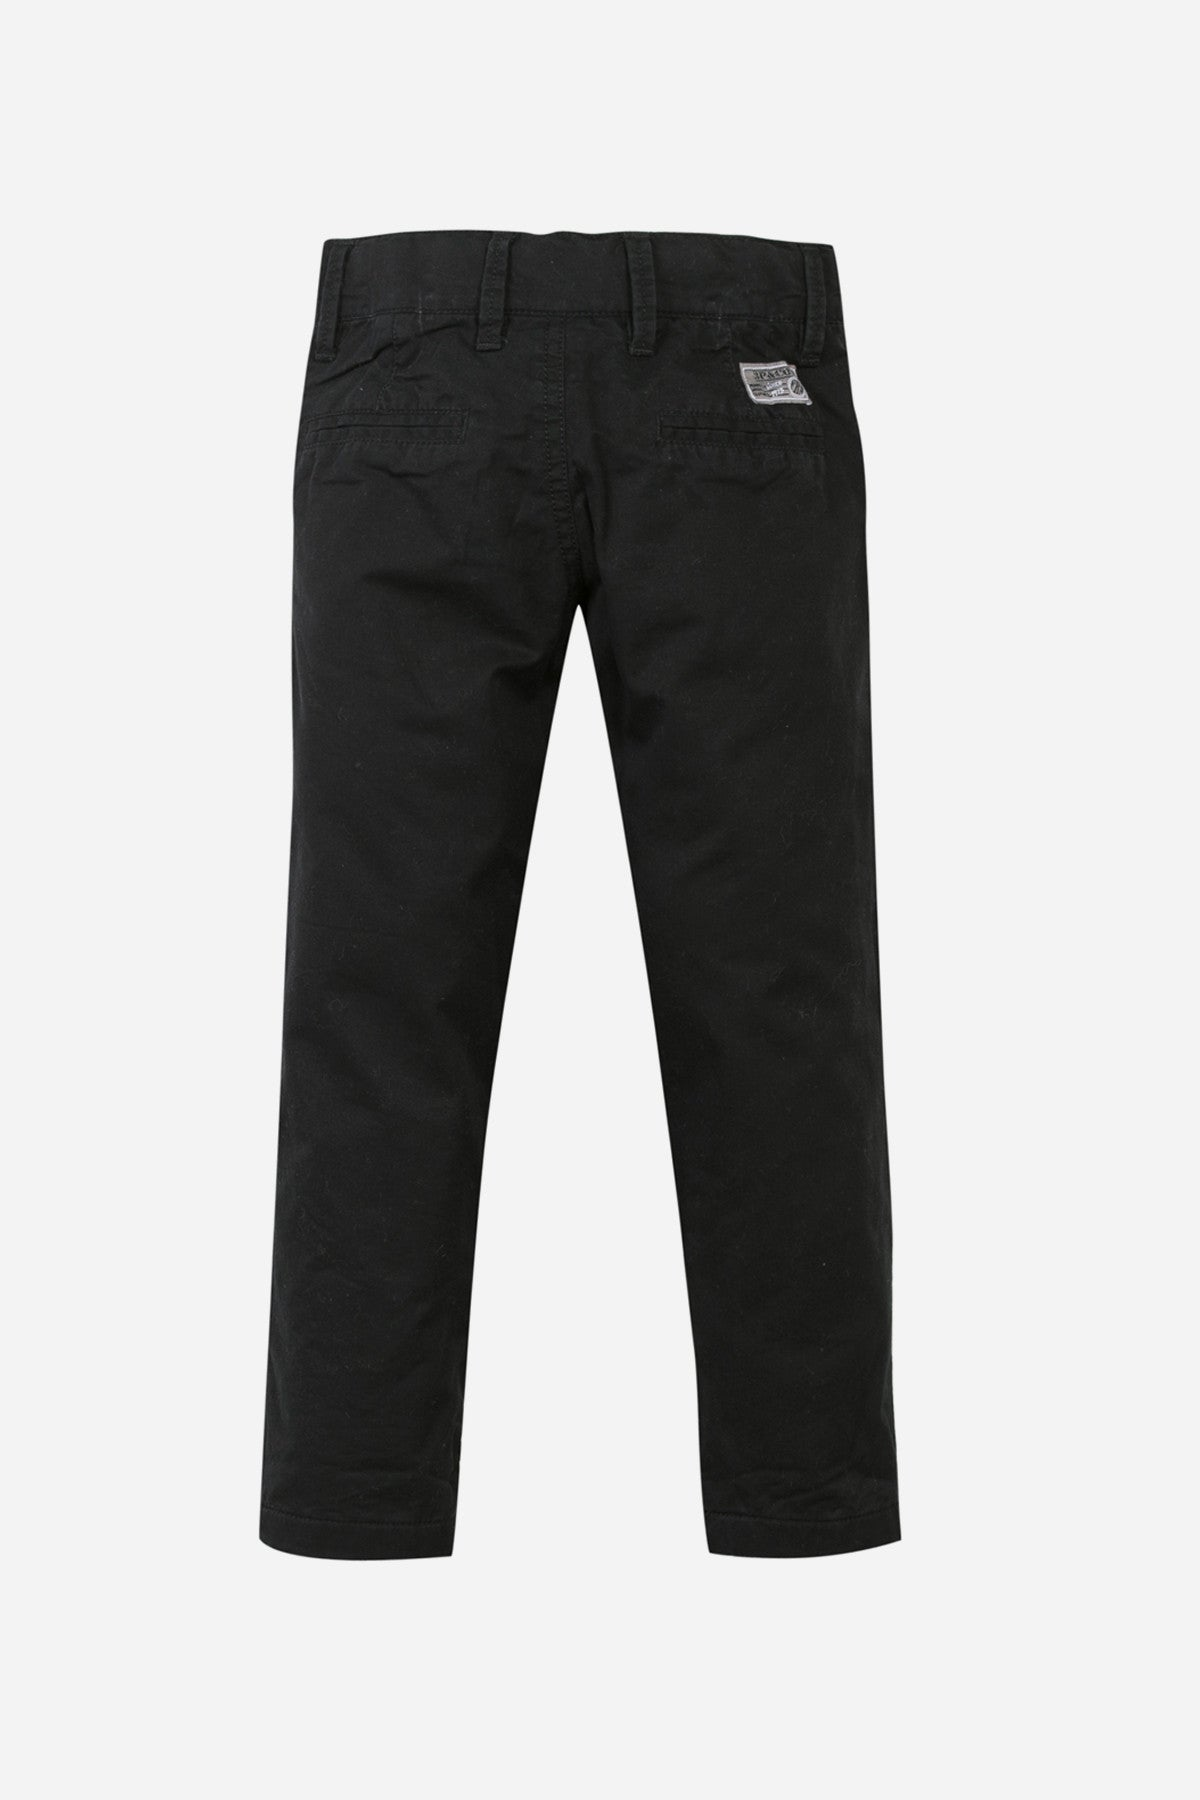 3pommes Black Boys Chino Pants (Size 3 left)